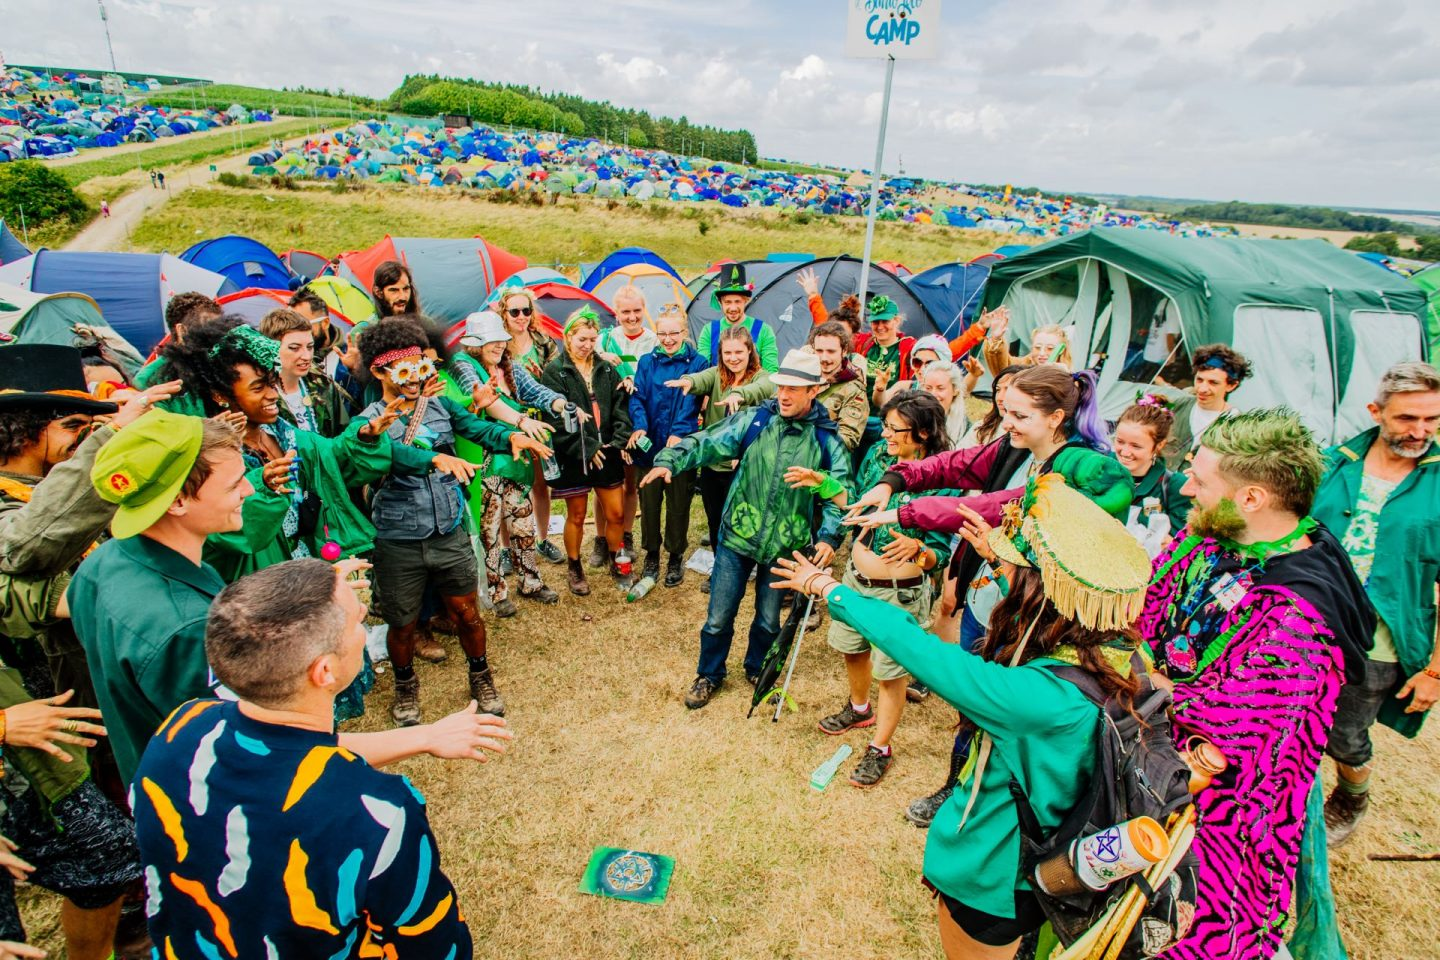 Eco Warriors promoting eco-friendly festival sustainability at Boomtown